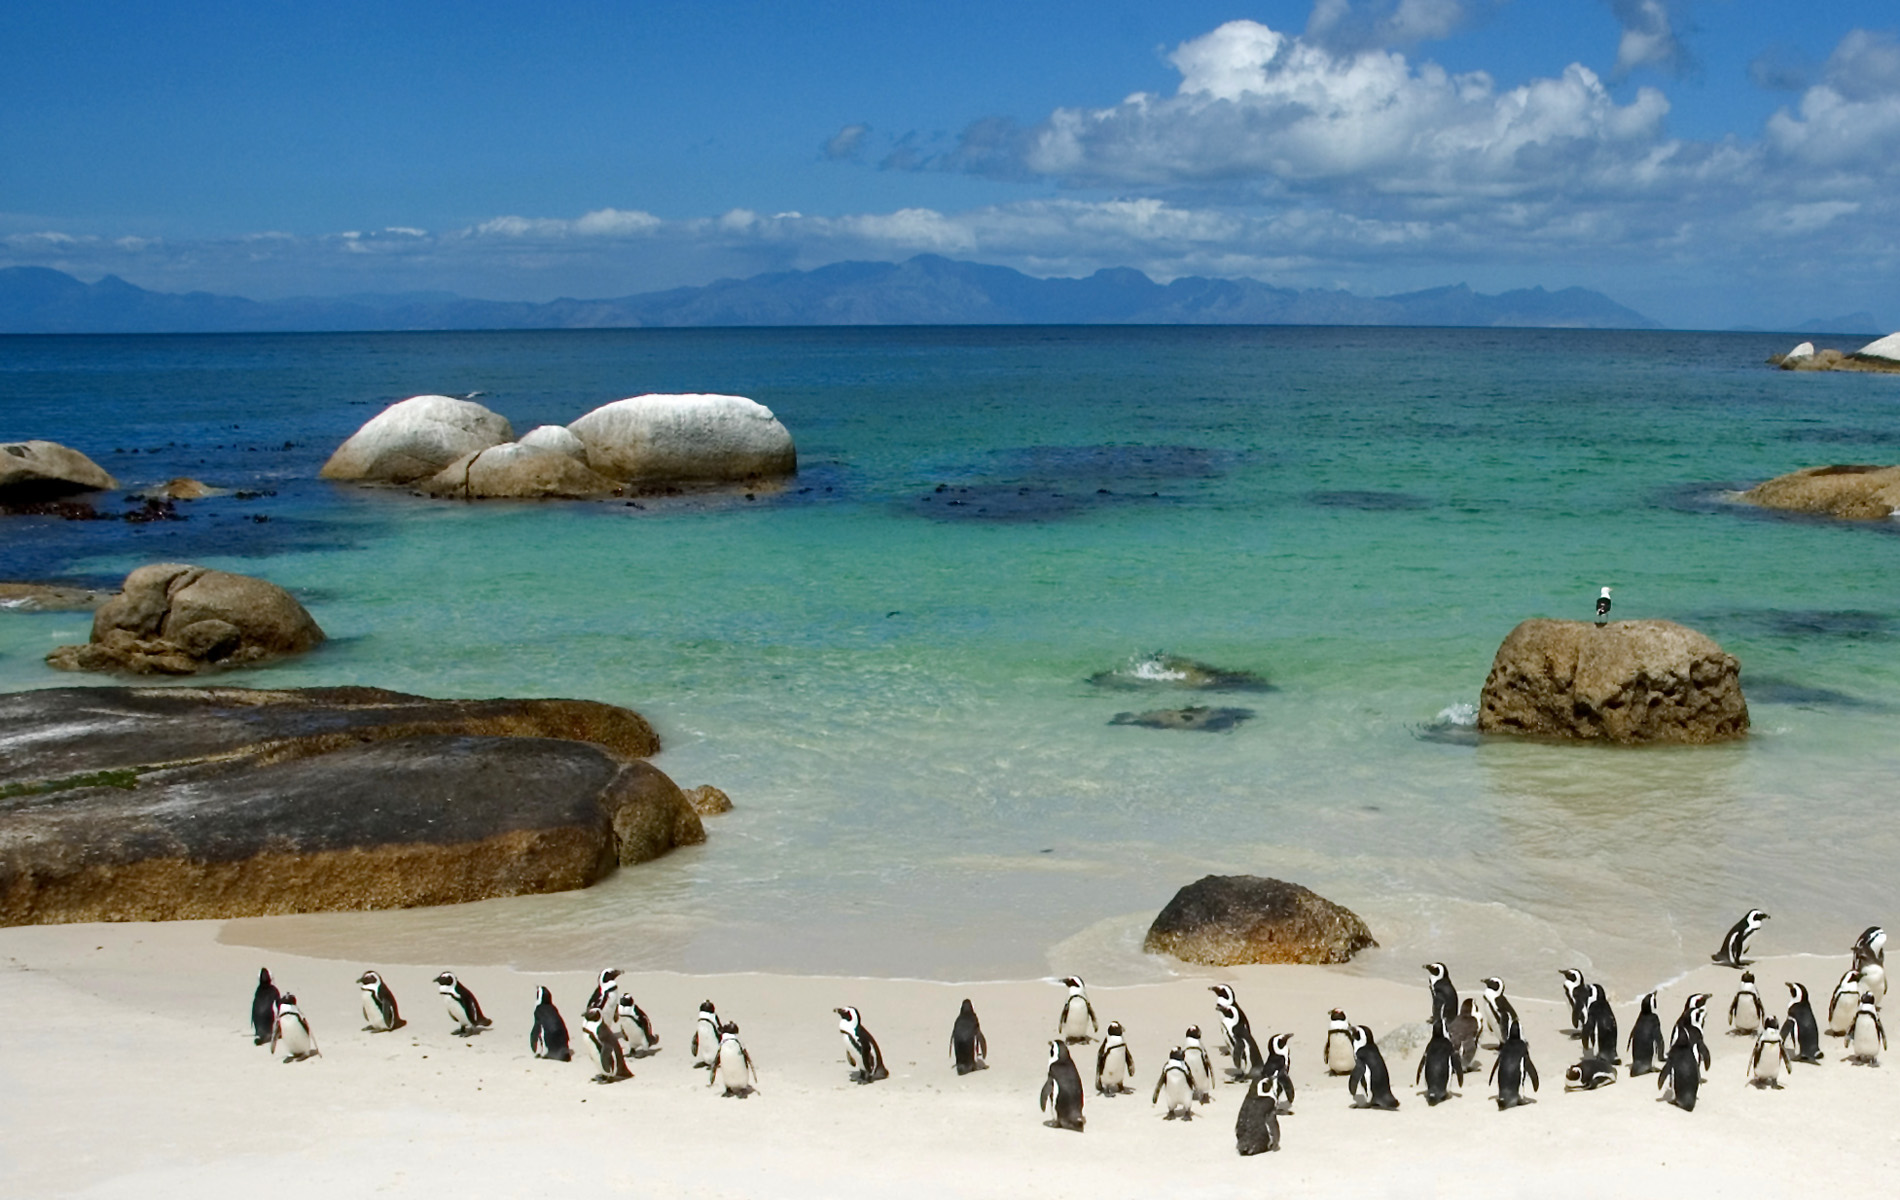 Penguins on Boulder Beach South Africa   Wallpaper 420 1900x1200